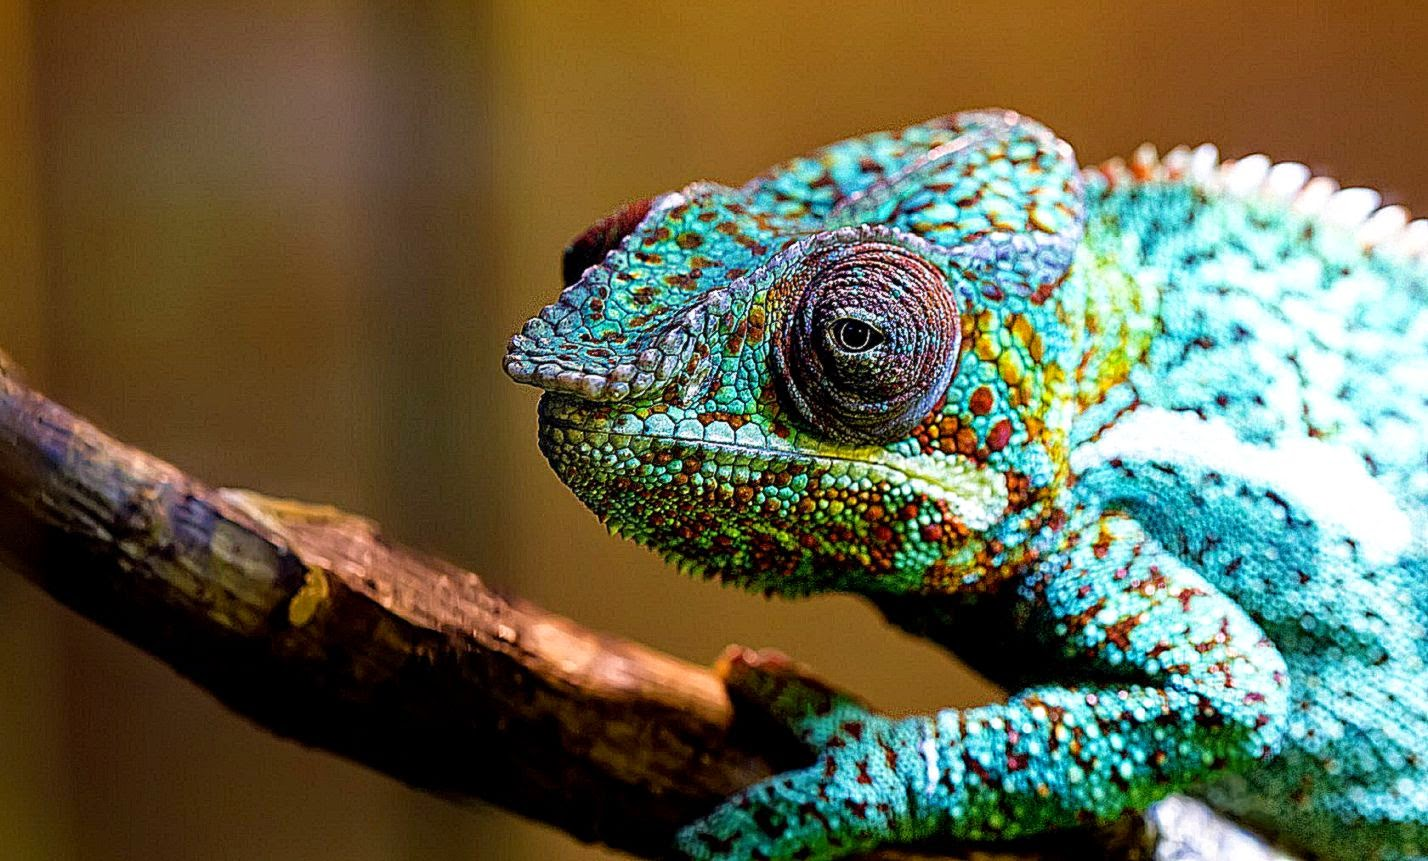 Free Download Chameleon Bokeh Hd Wallpaper Hd Wallpapers 1428x861 For Your Desktop Mobile Tablet Explore 44 Chameleon Wallpaper Hd Panther Chameleon Wallpaper Lizard Wallpapers Robot Hd Wallpaper